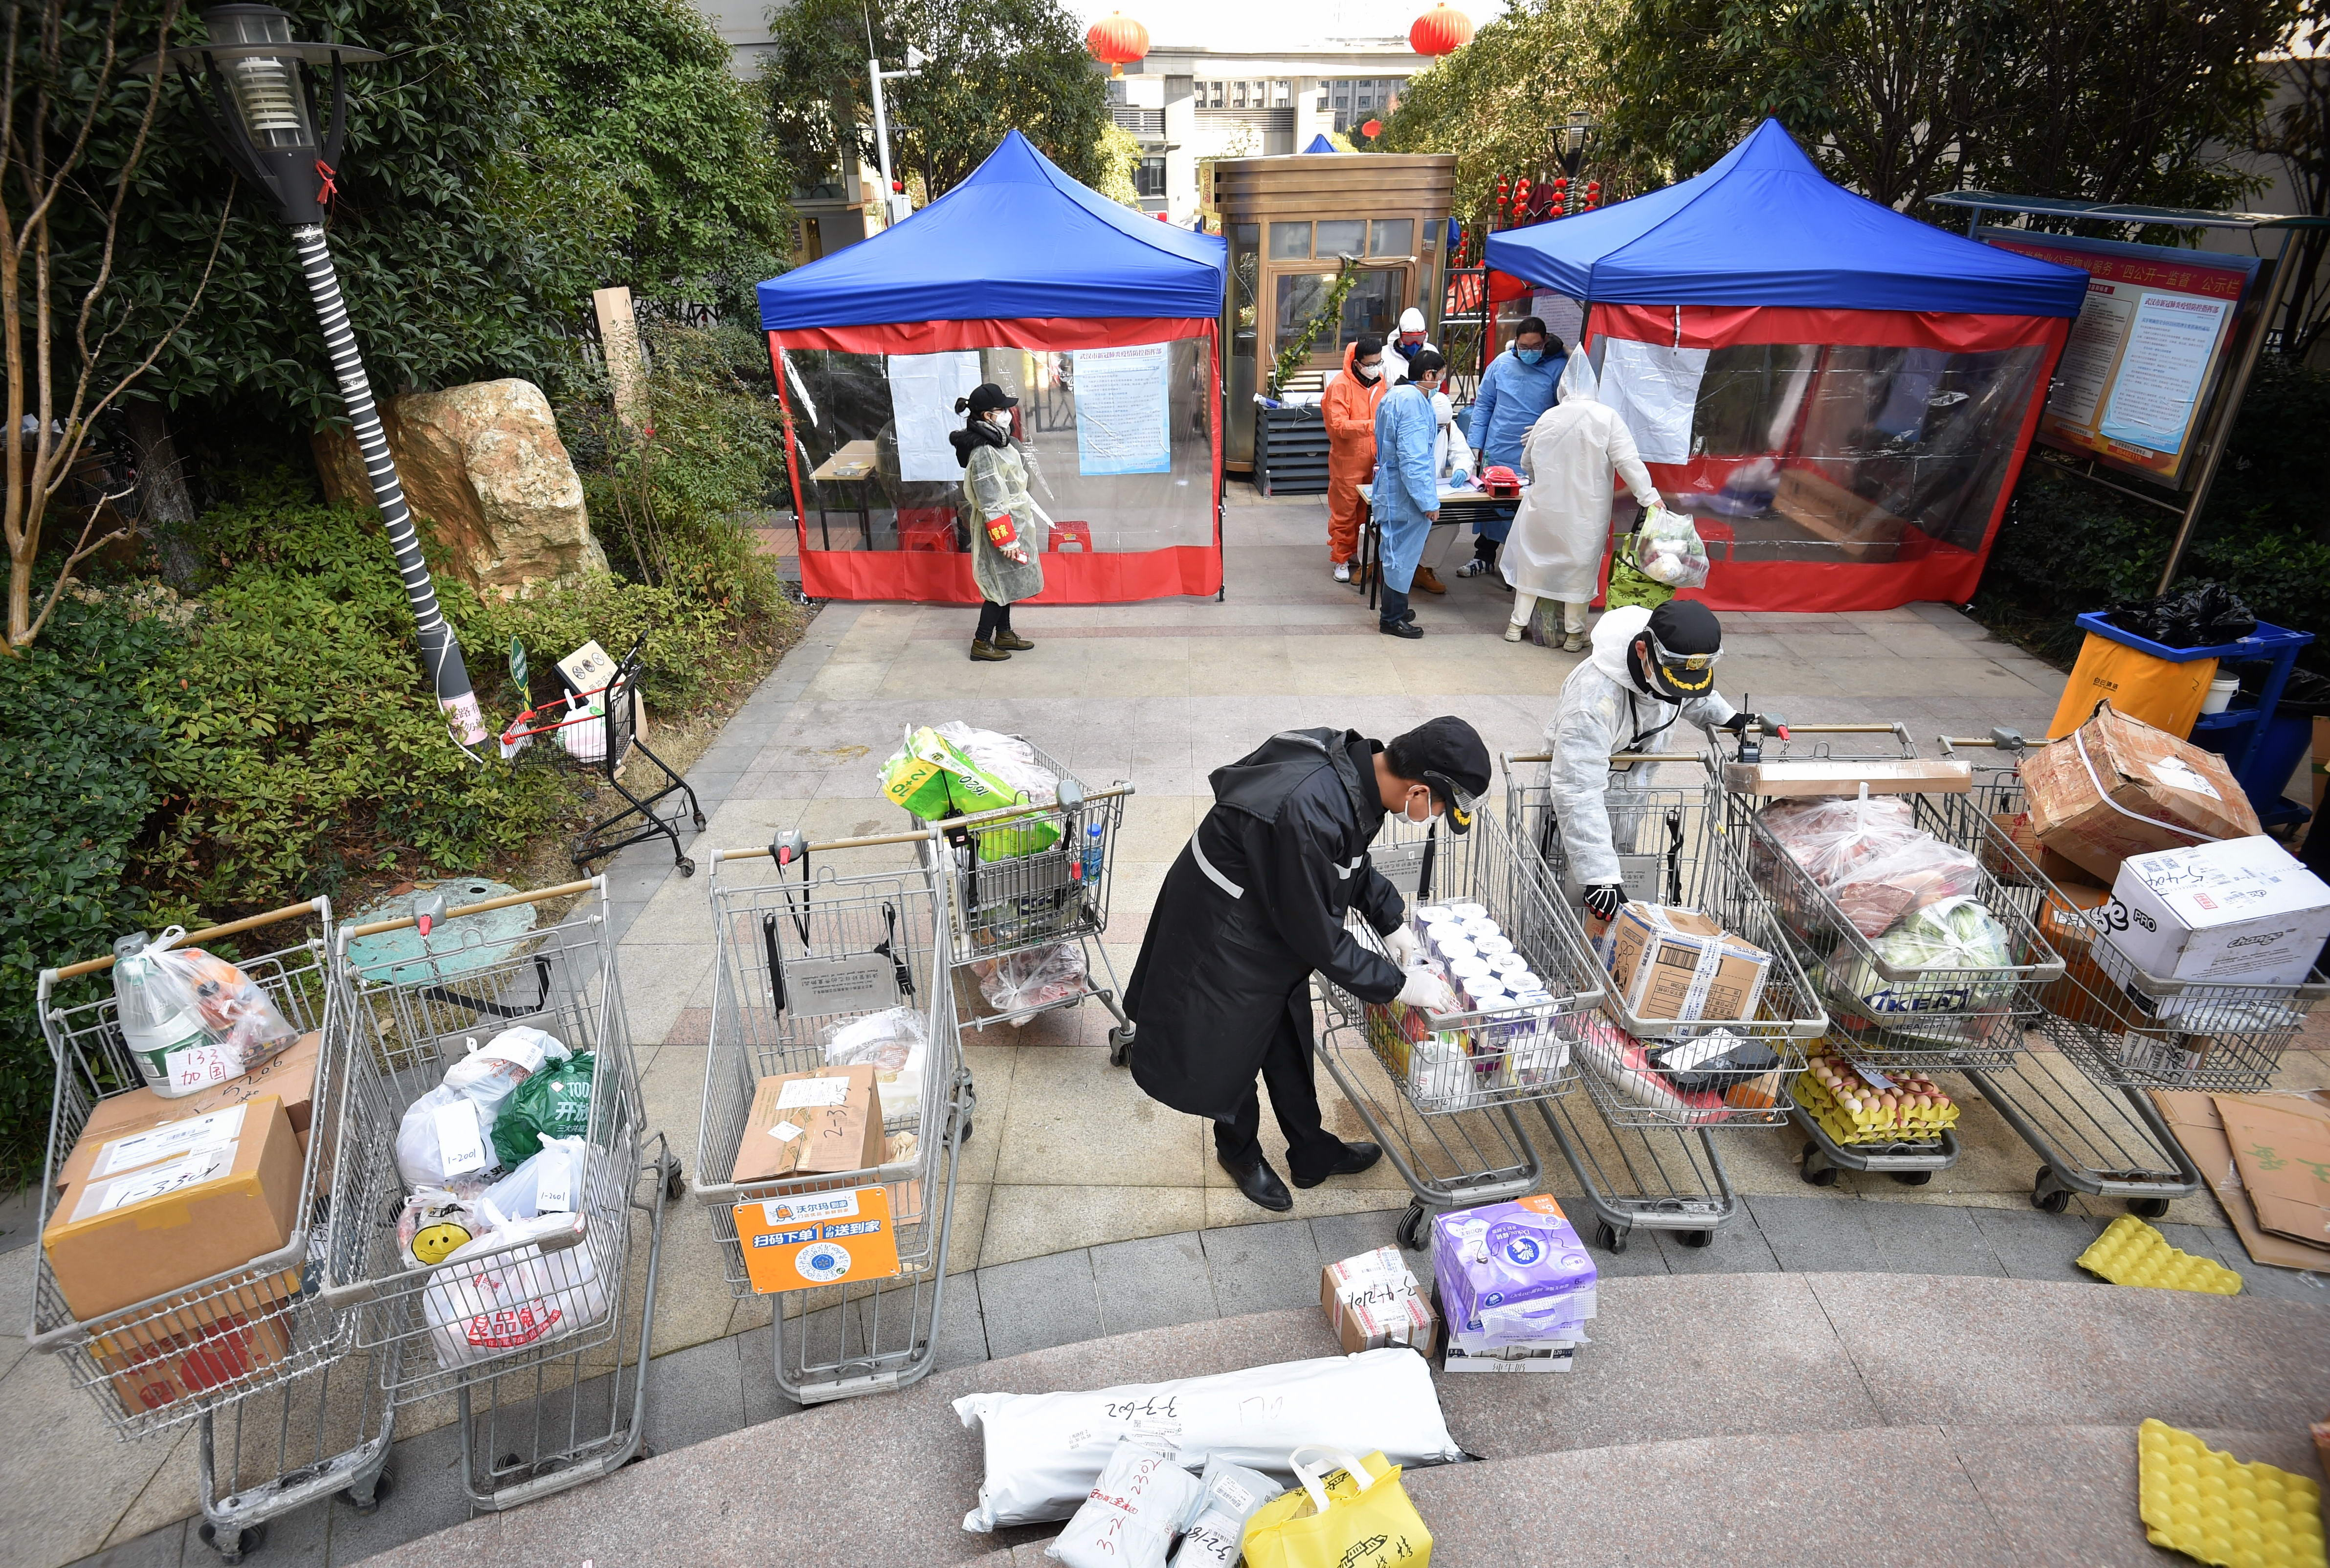 Workers wearing masks load food into carts to deliver them to an apartment complex in the background.